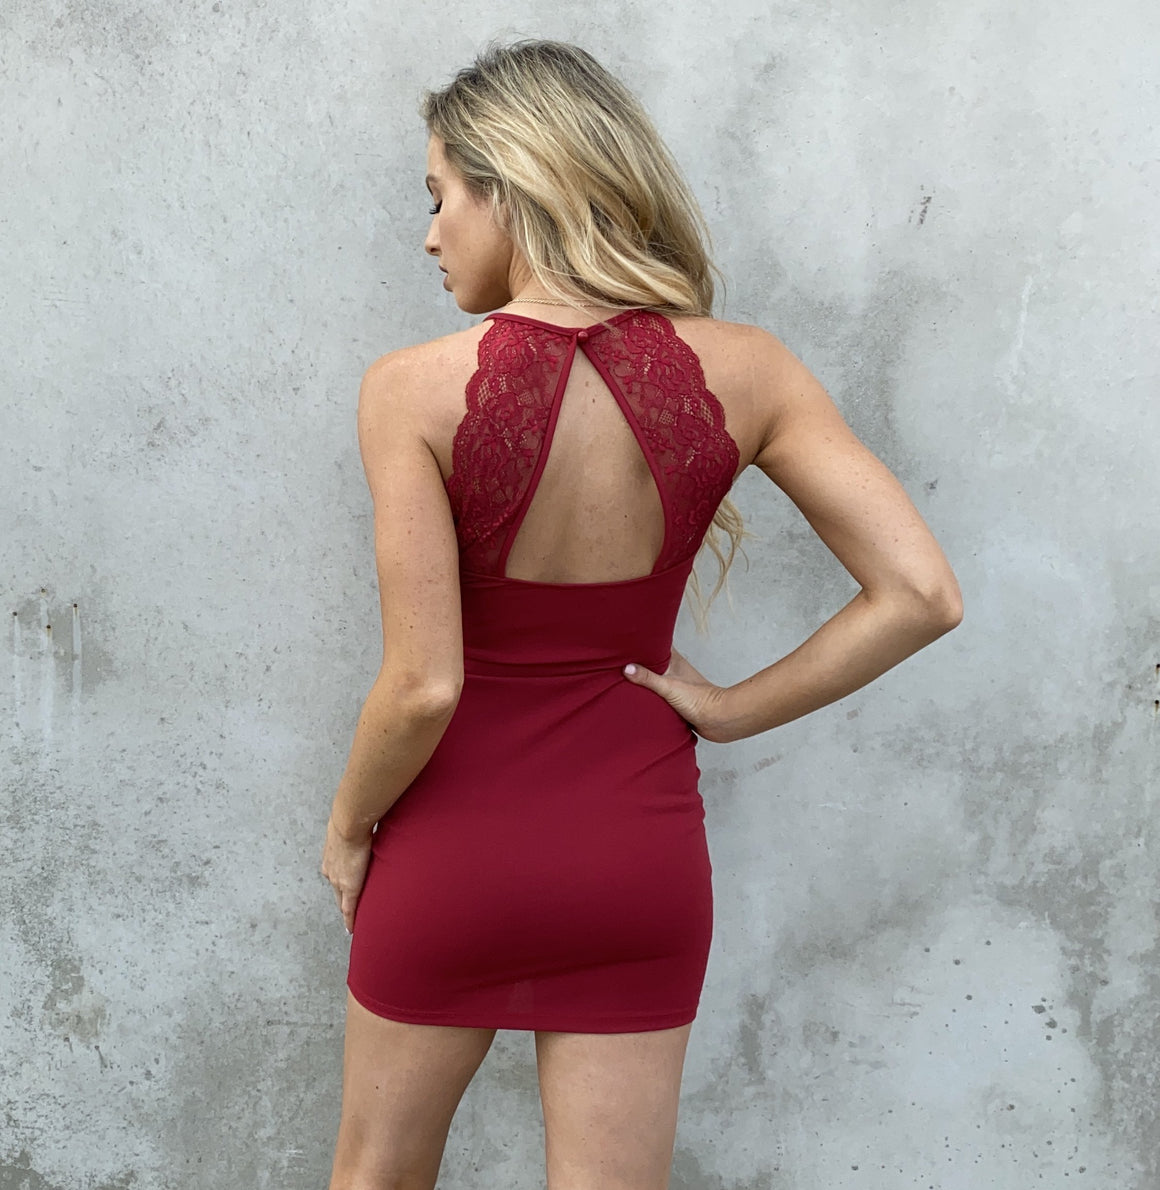 Adore You Dress in Red - Dainty Hooligan